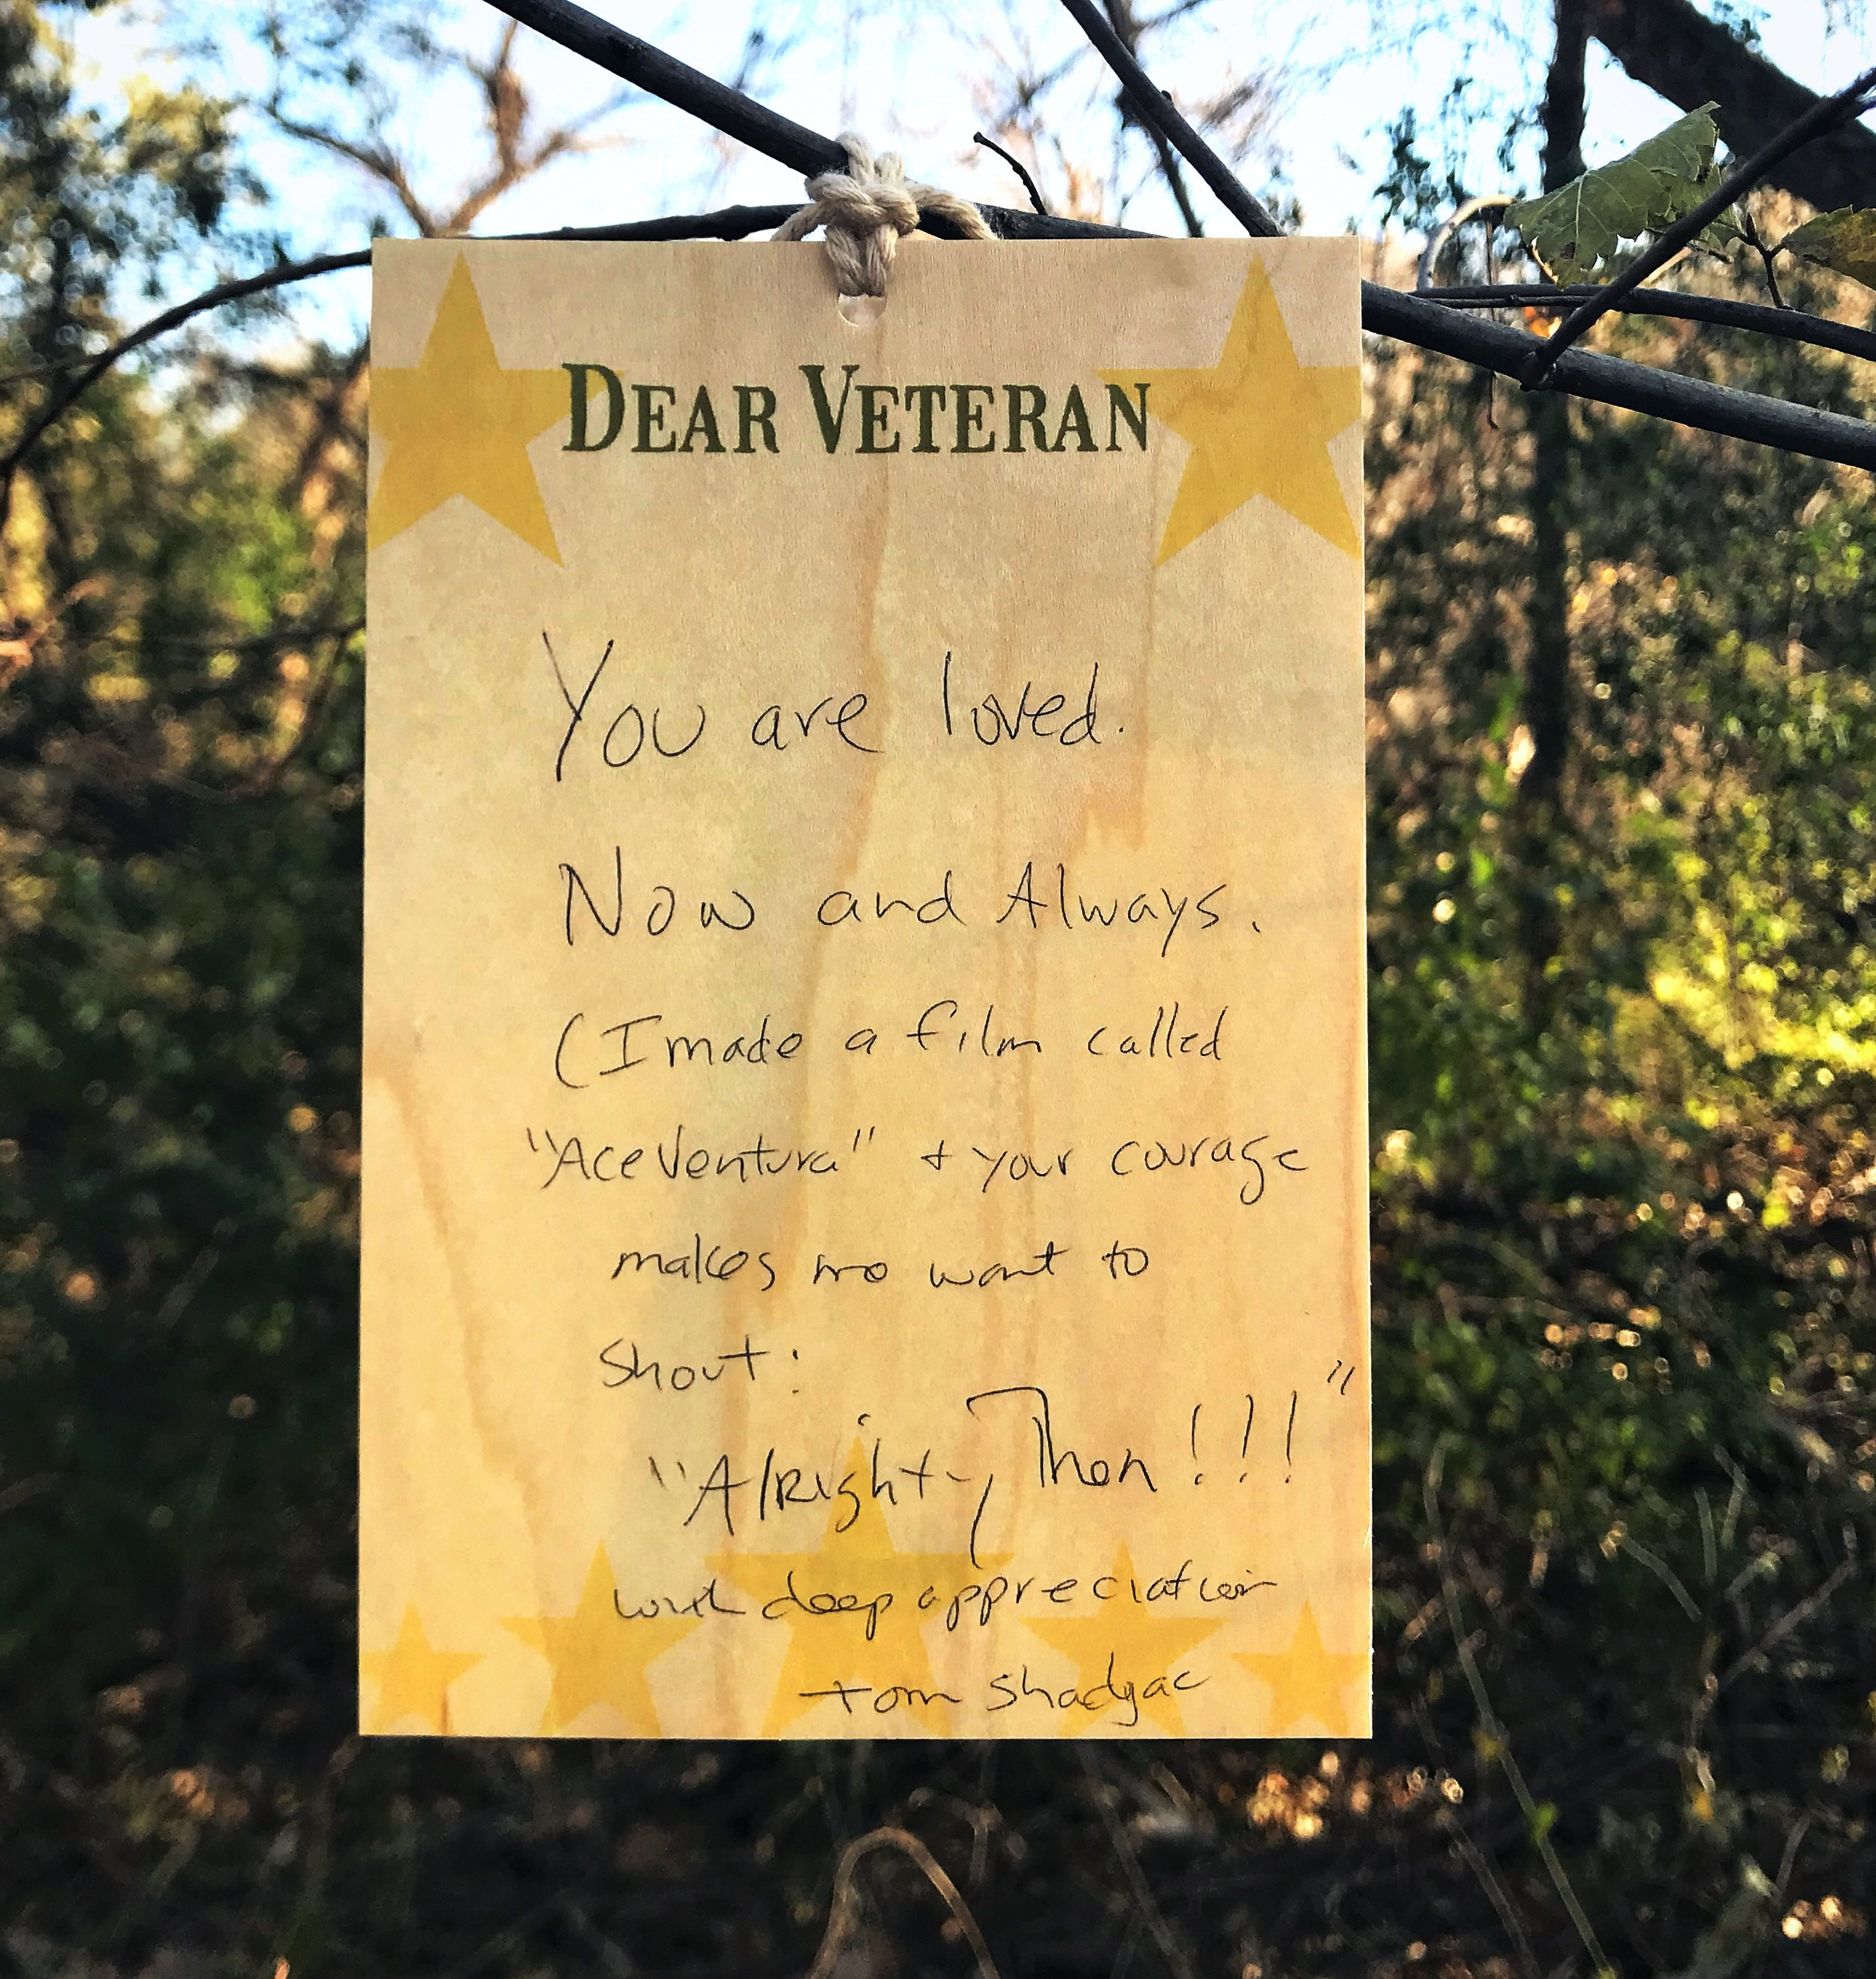 DearVeteran_NOV14_2017.JPG